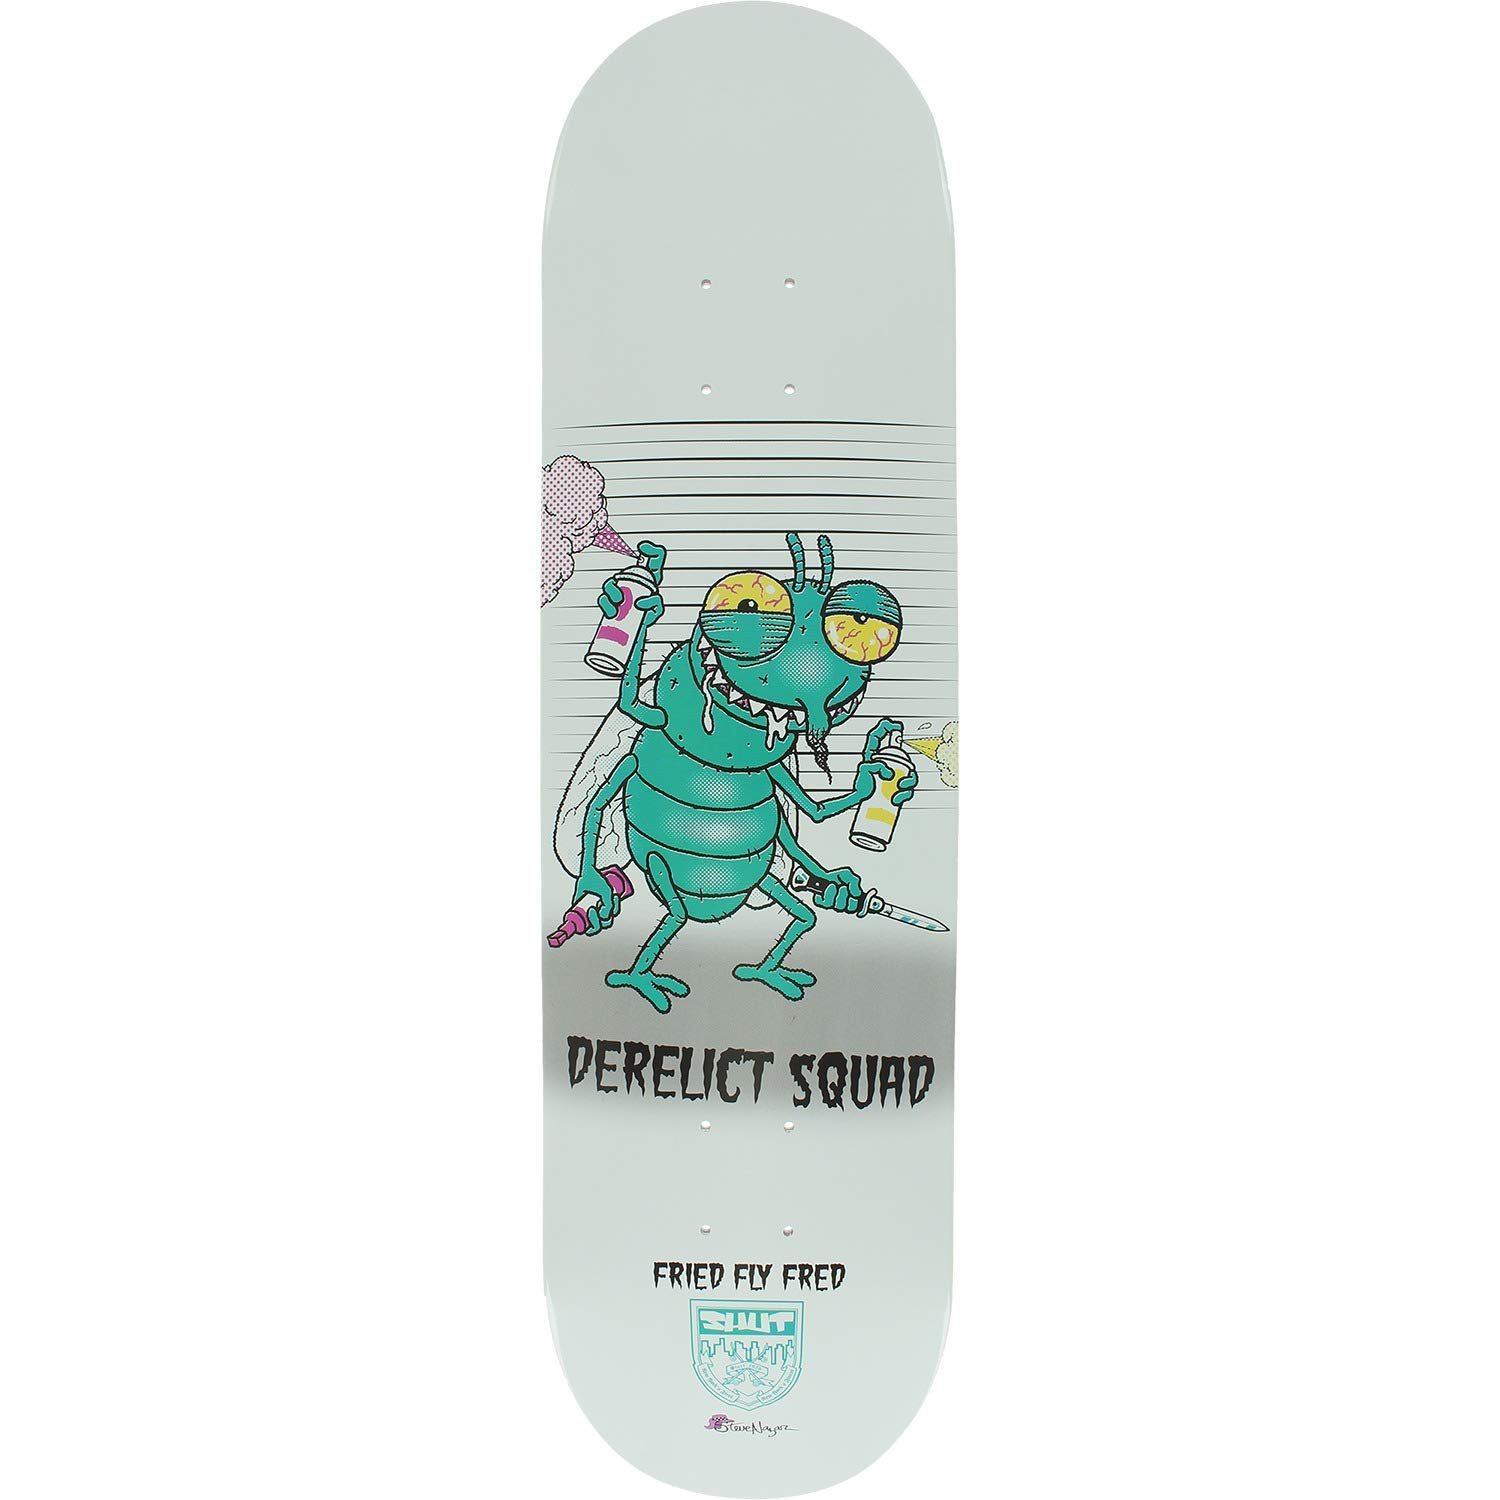 "Shut Skateboards Steve Nazar Fried Fly Fred Skateboard Deck - 8.25"" x 32"""